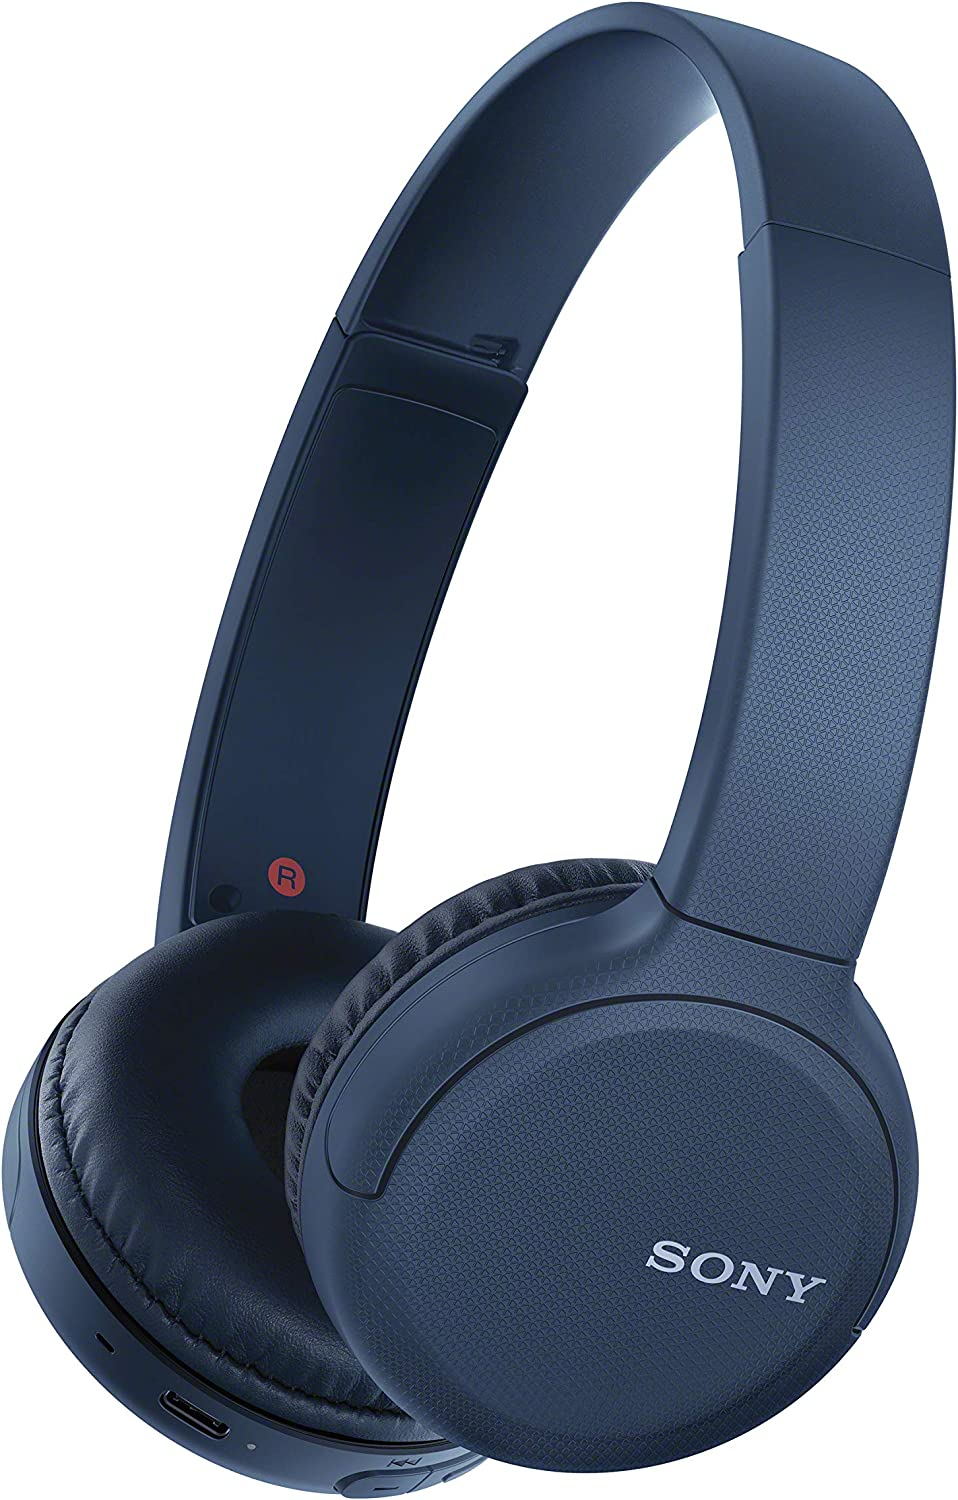 Sony Wireless Headphones WH-CH510: Wireless Bluetooth On-Ear Headset with Mic for phone-call, Blue